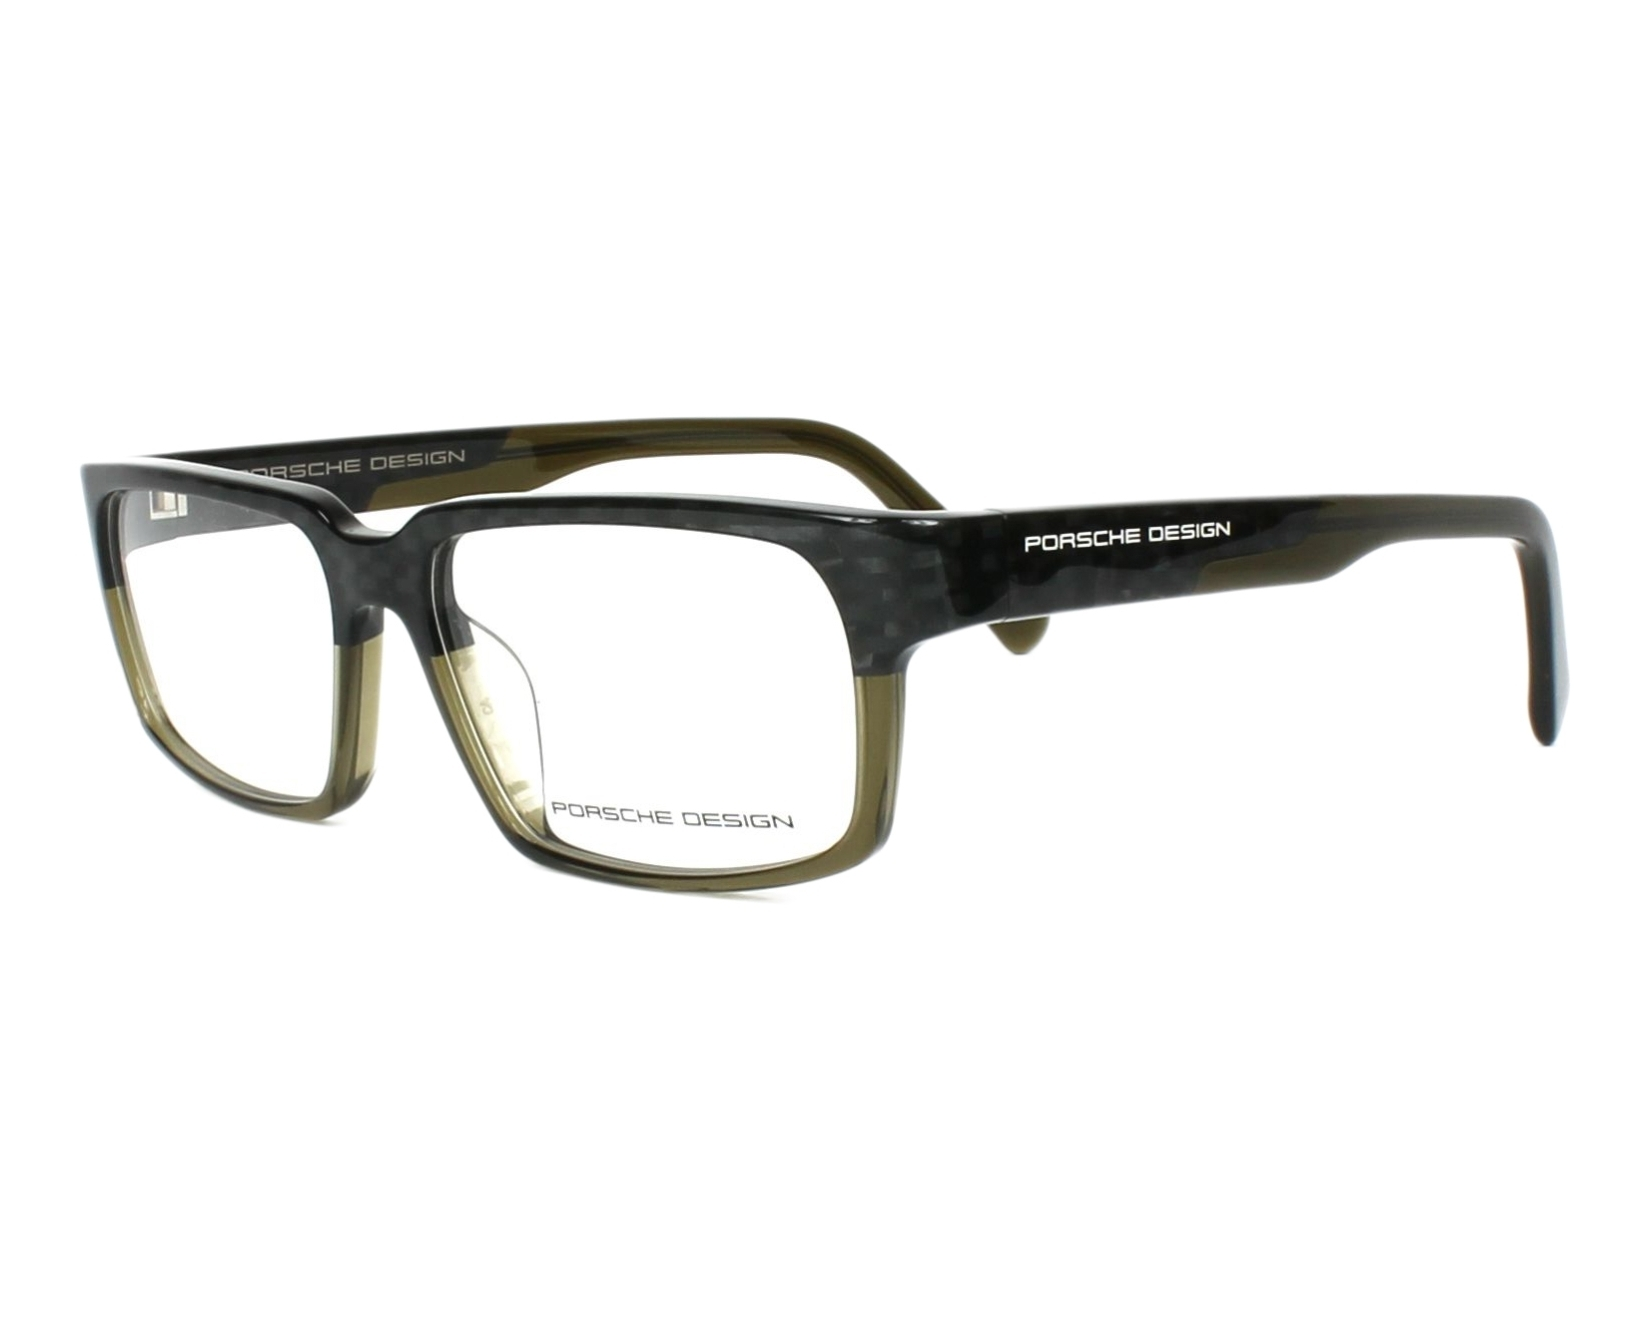 9e851a1a8e4 Porsche Design Glasses For Sale Online